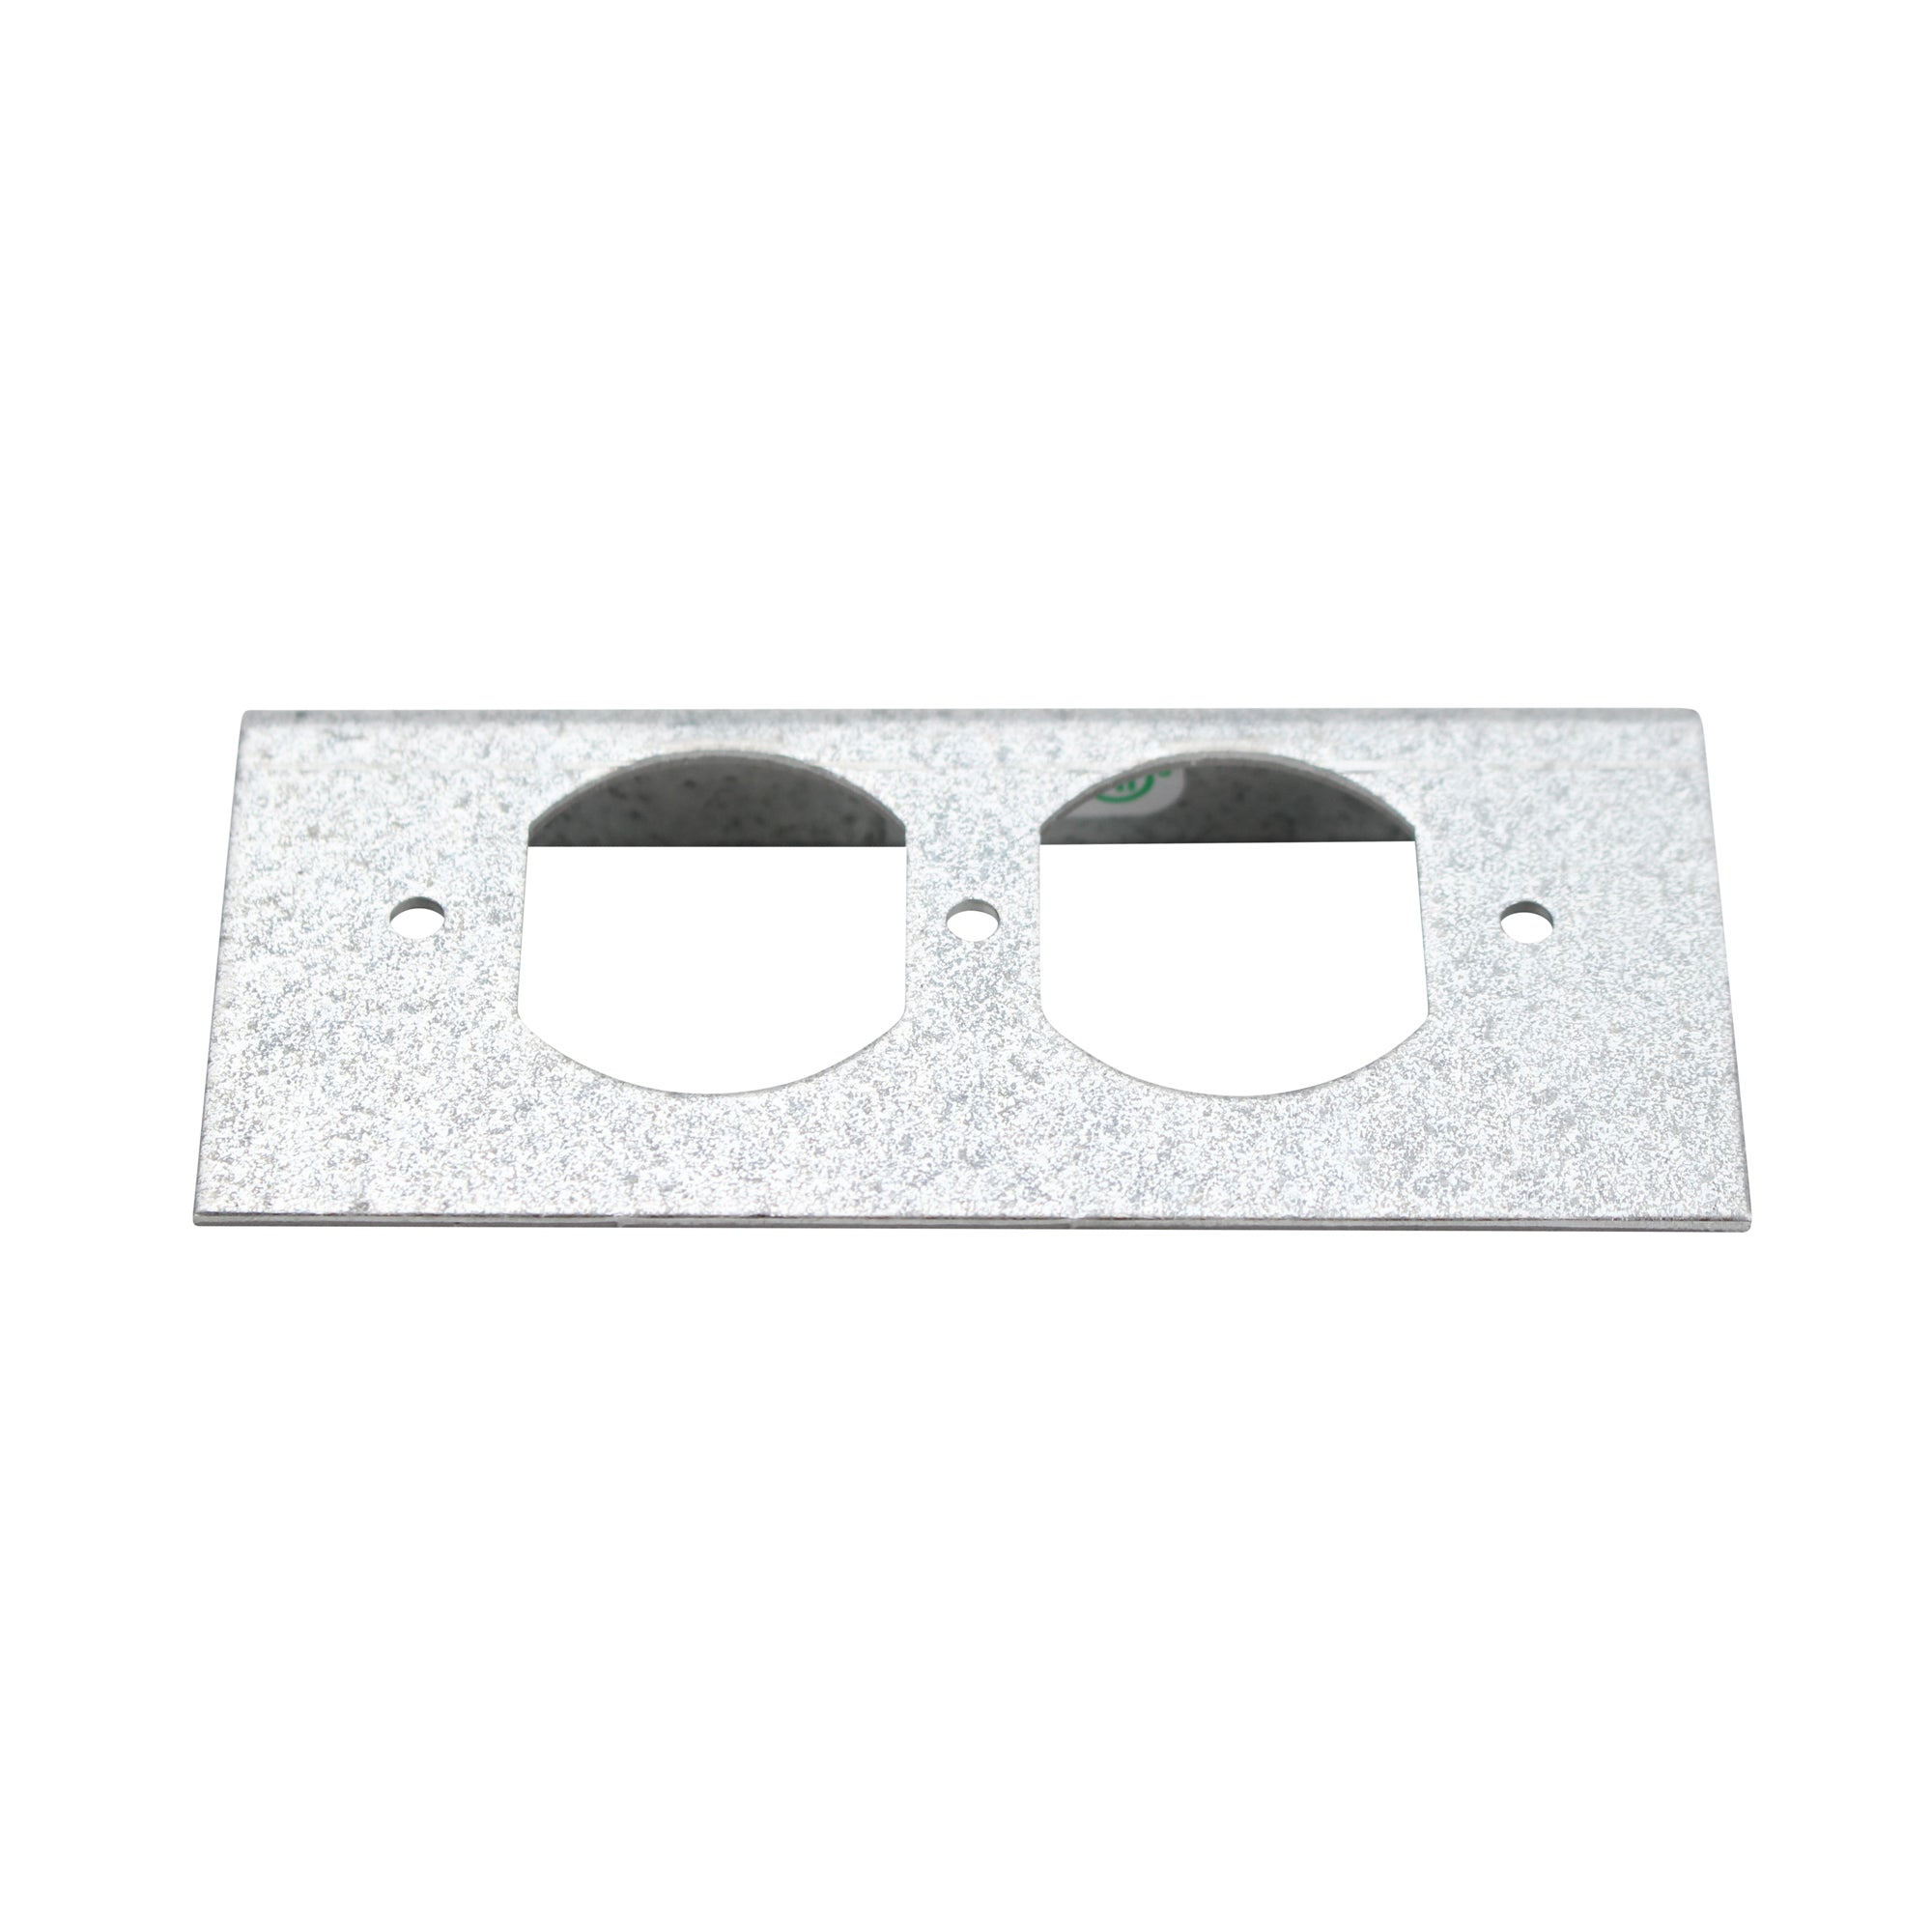 Wiremold Rfb Rb Ss Internal Duplex Receptacle Bracket